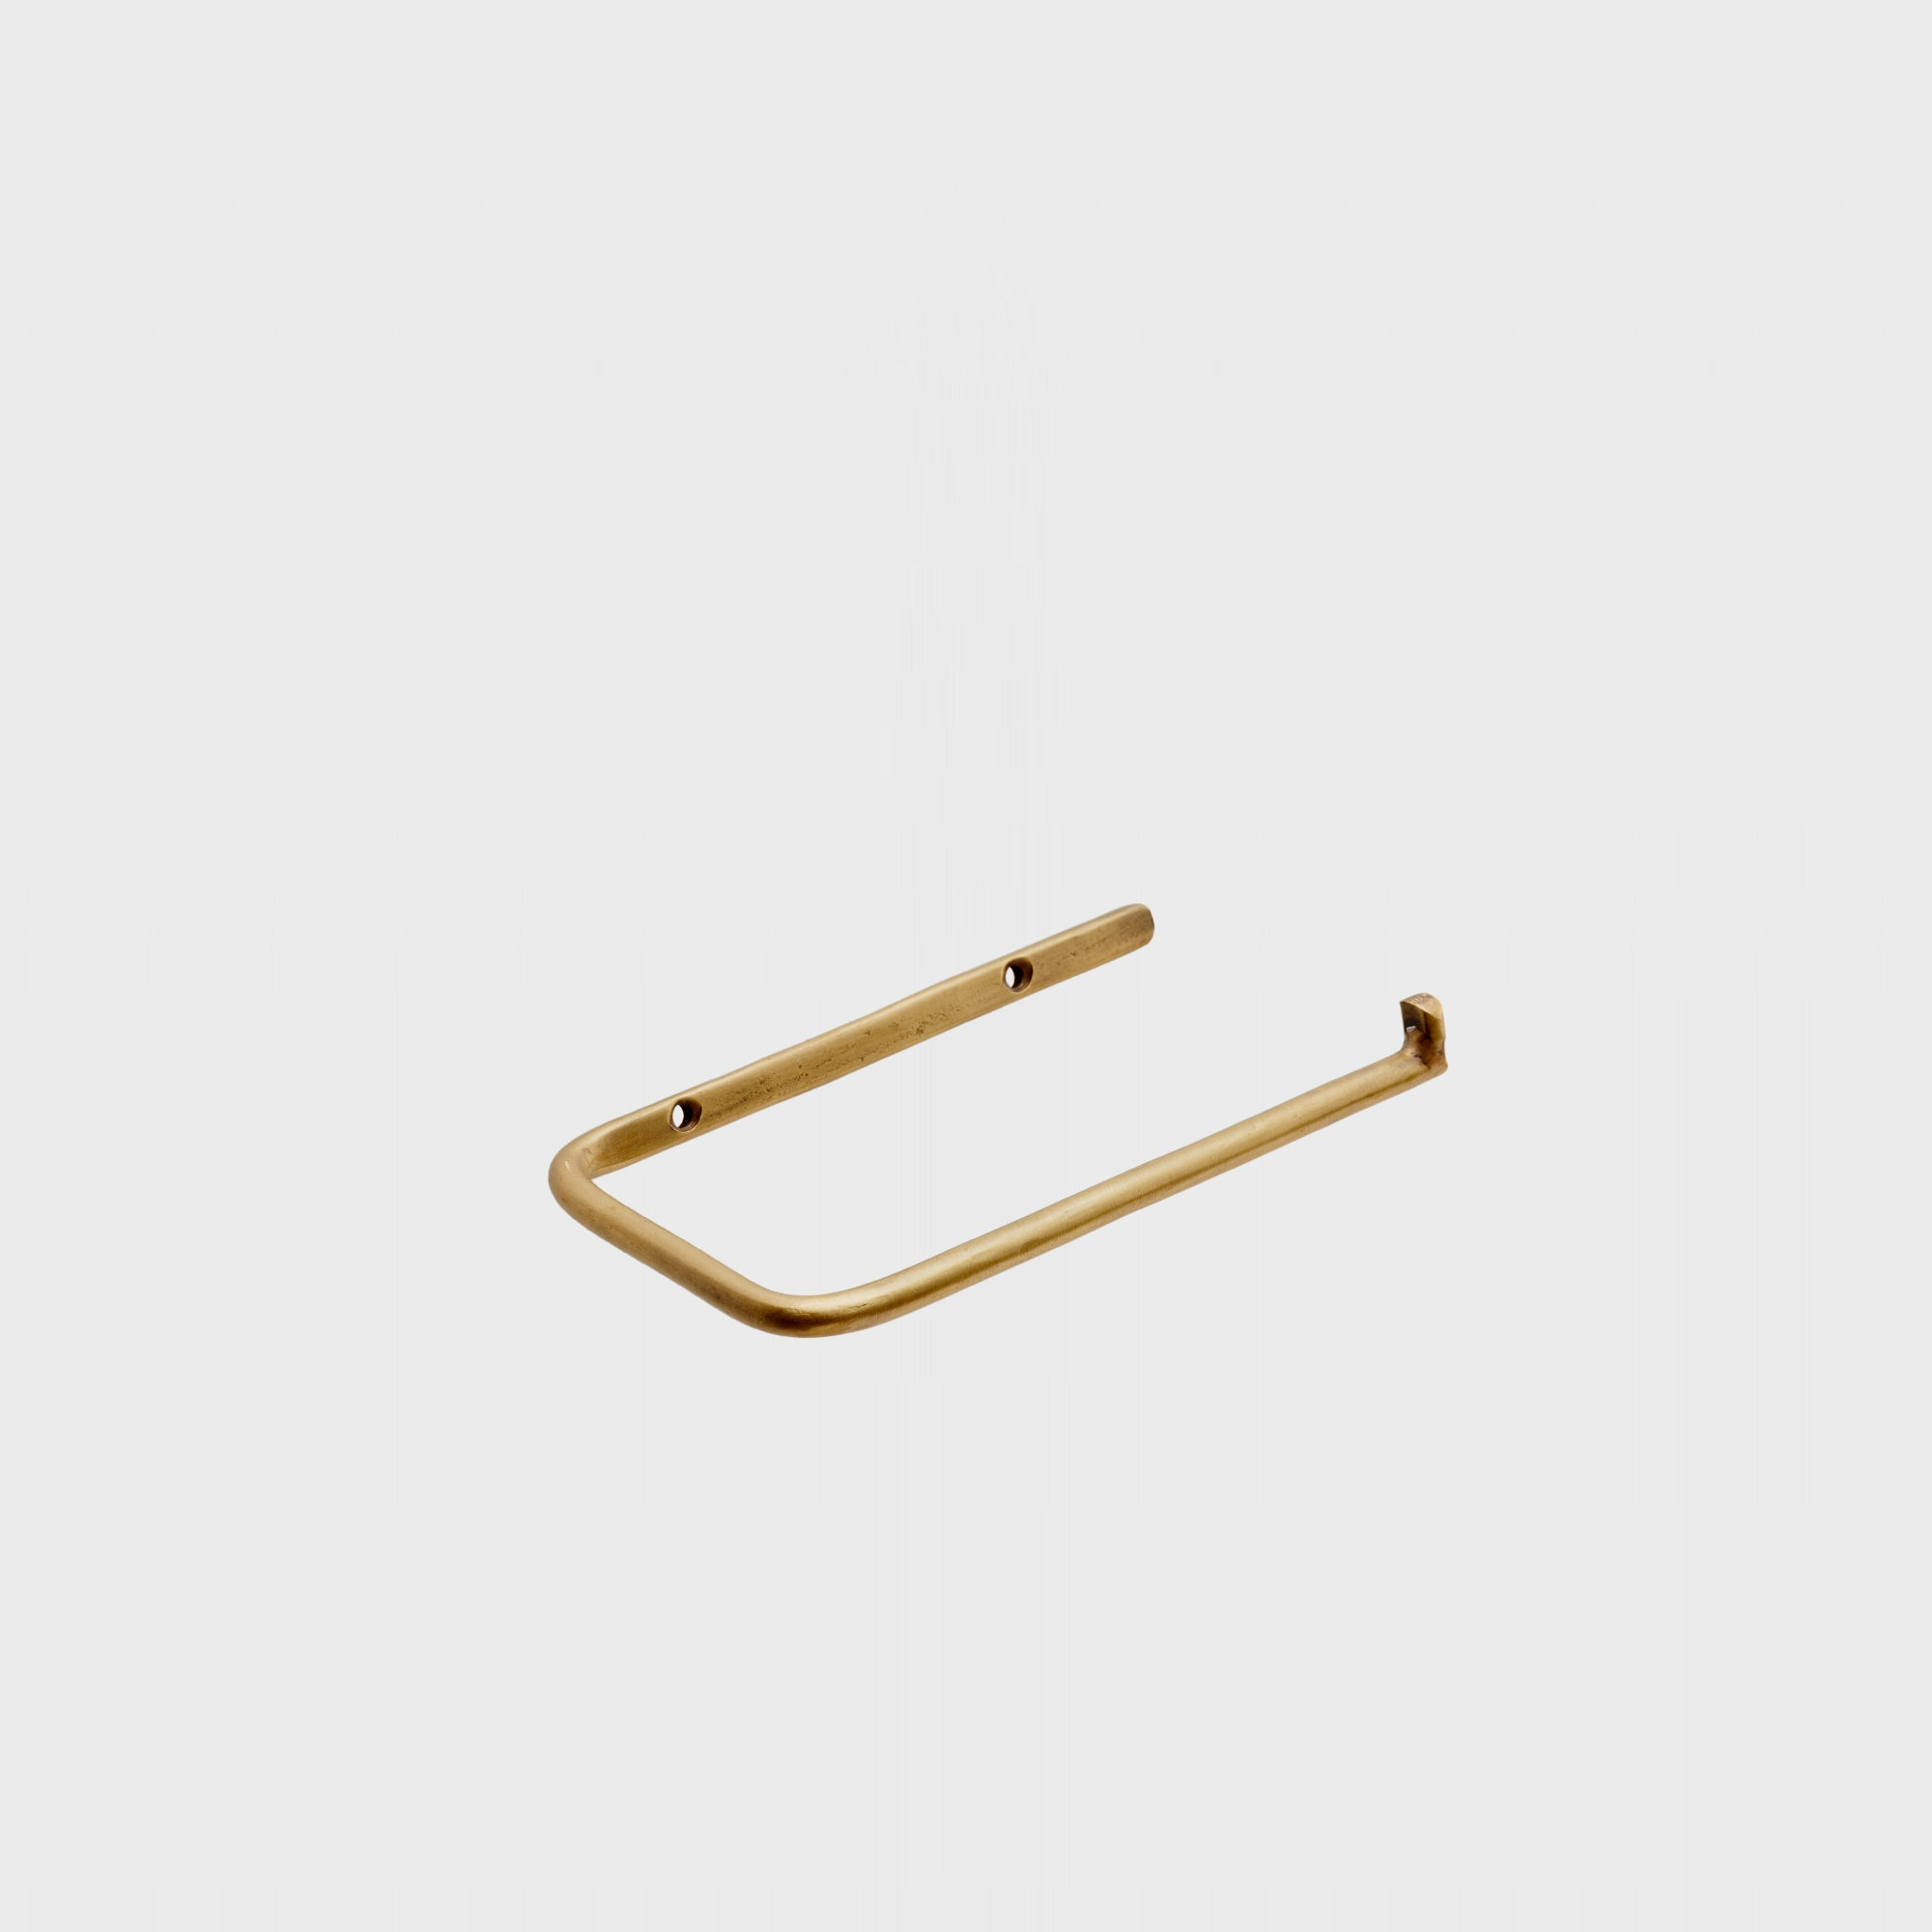 Brass Toilet Paper Holder - Bath - Bath Accessories – Shoppe Amber Interiors